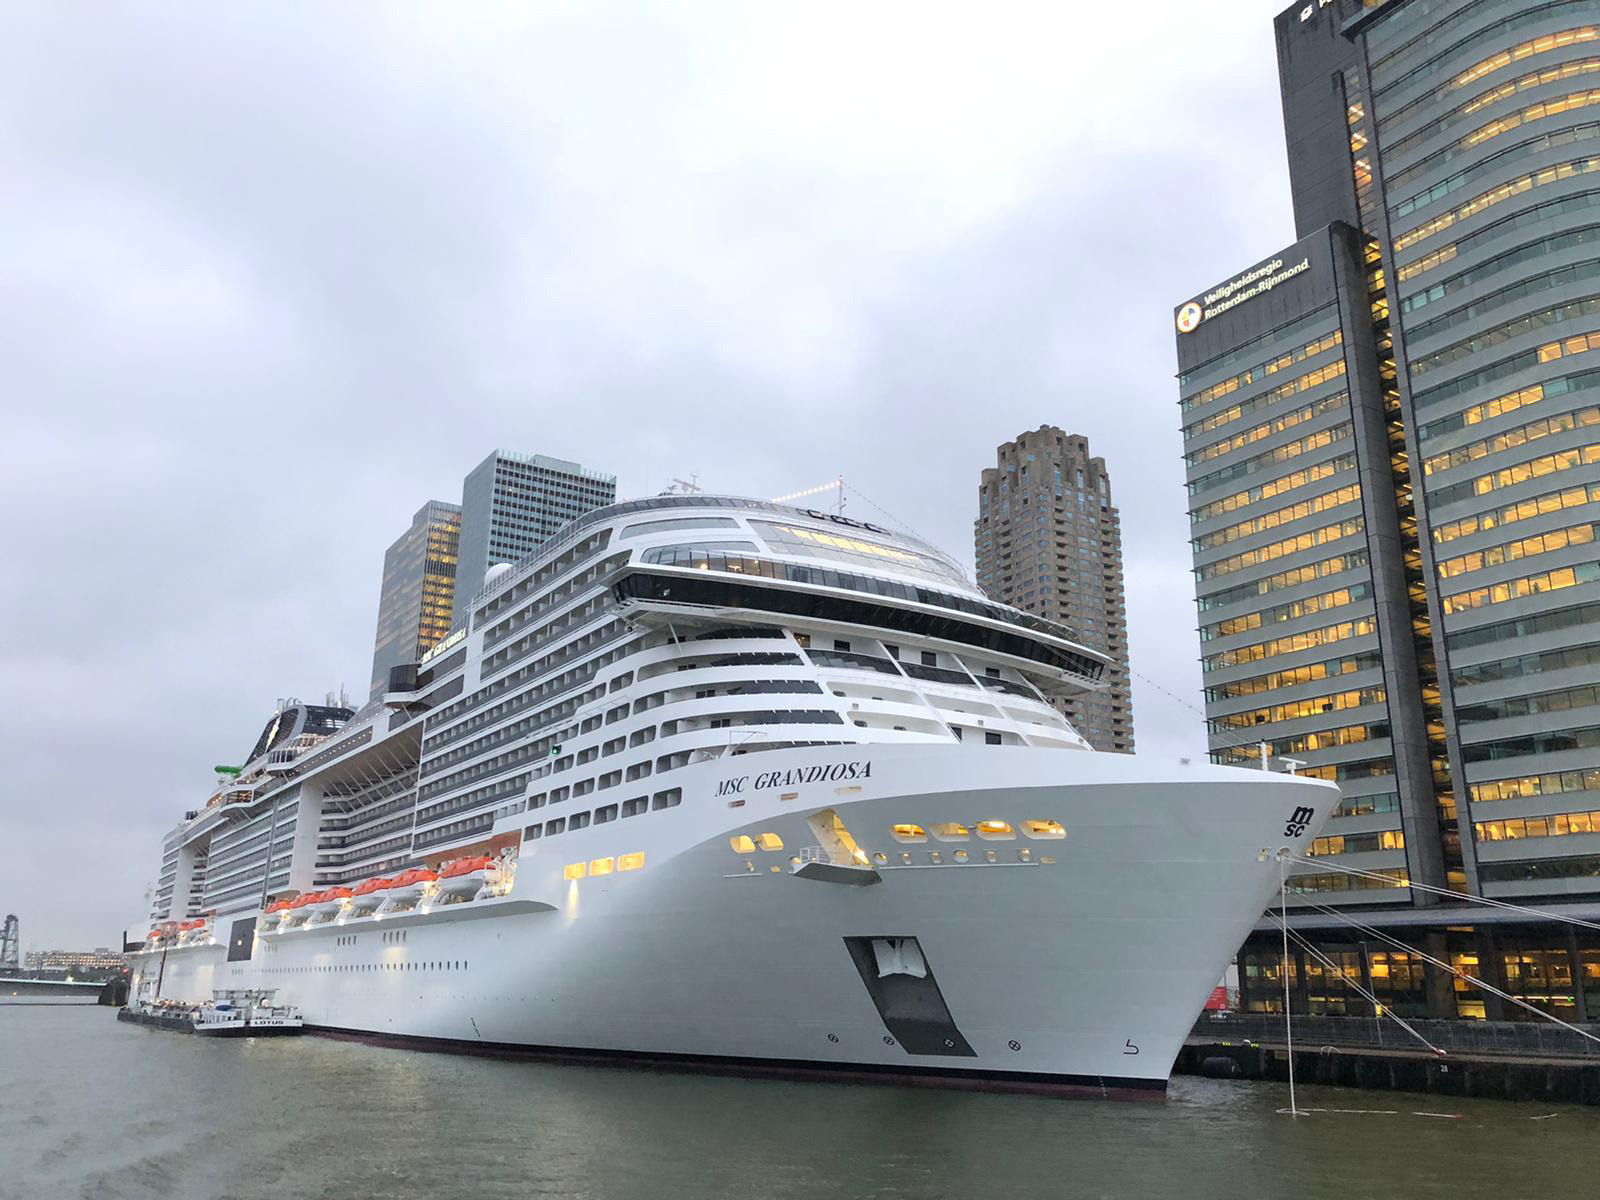 MSC Grandiosa in the Port of Rotterdam